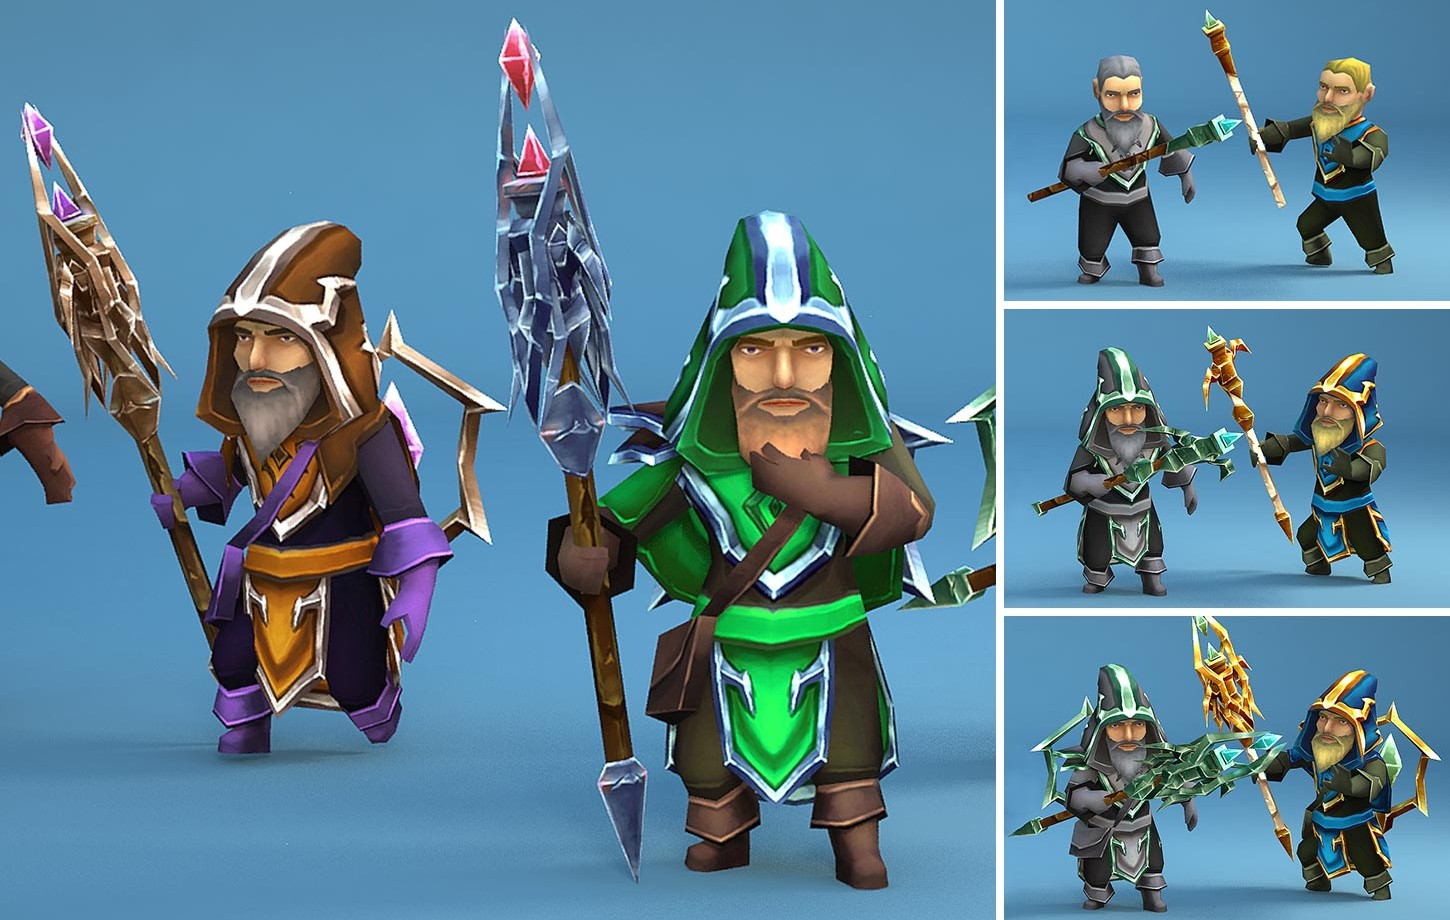 Animated Mage Heroes